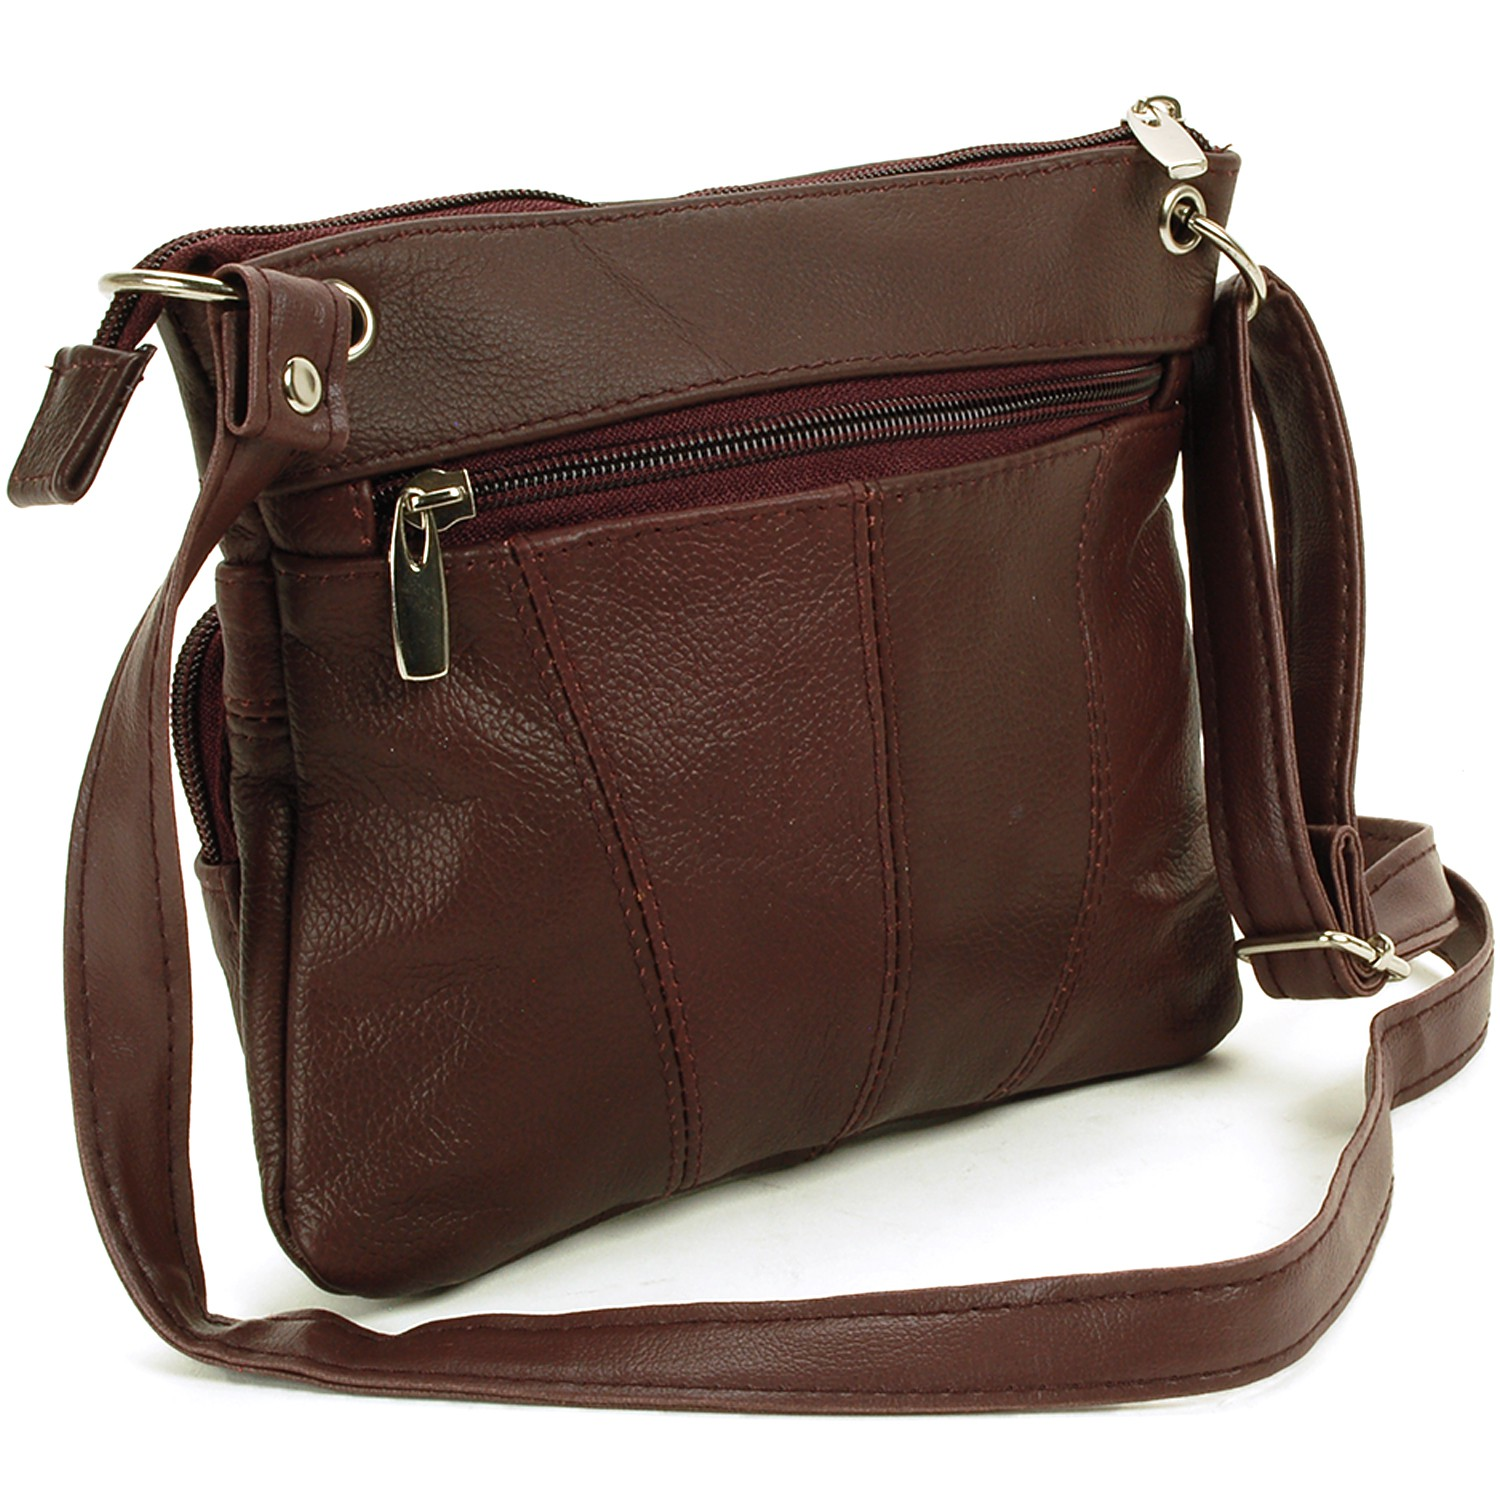 Women's Leather Purse Cross Body Shoulder Bag Handbag ...